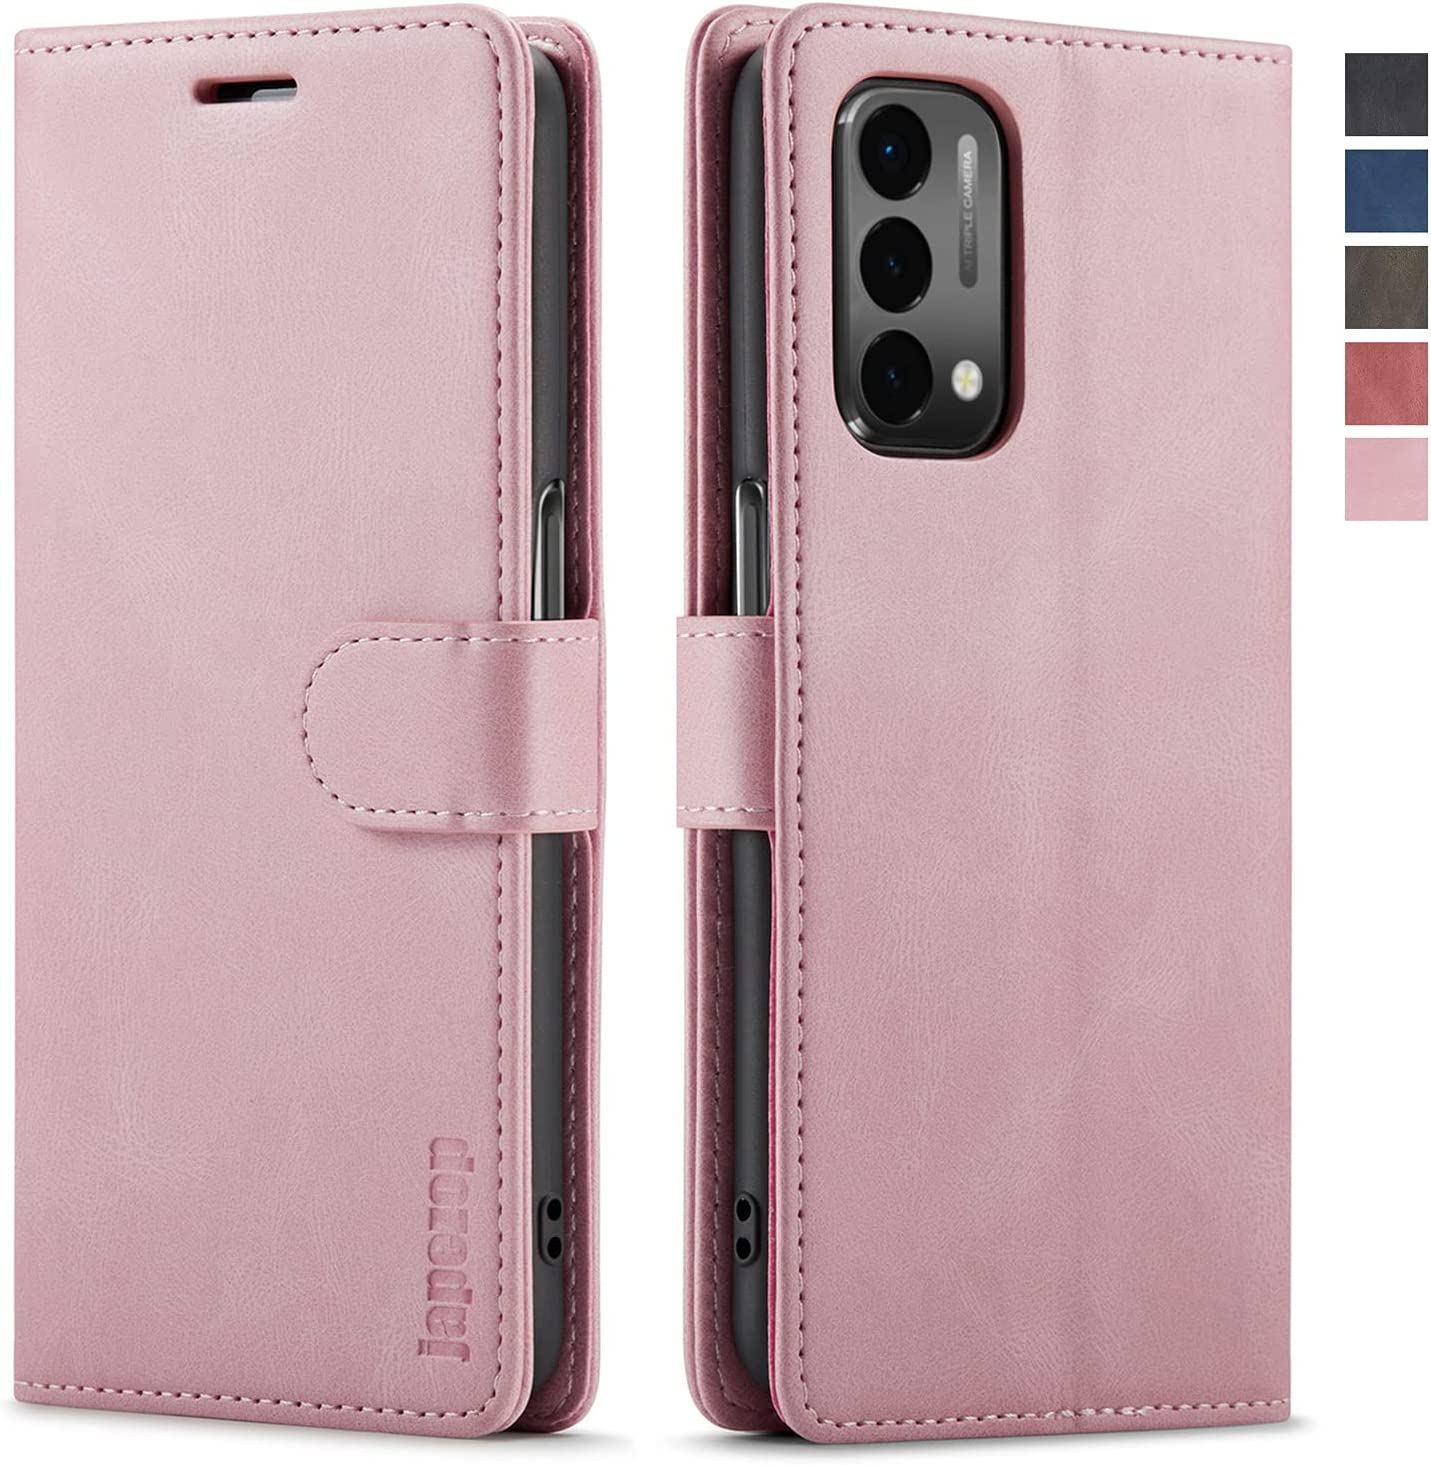 OnePlus Nord N200 5G Case,OnePlus Nord N200 5G Wallet Case for Women with [RFID Blocking] Card Holder Kickstand Magnetic,Leather Flip Case for OnePlus Nord N200 5G 6.49 Inch (Pink)